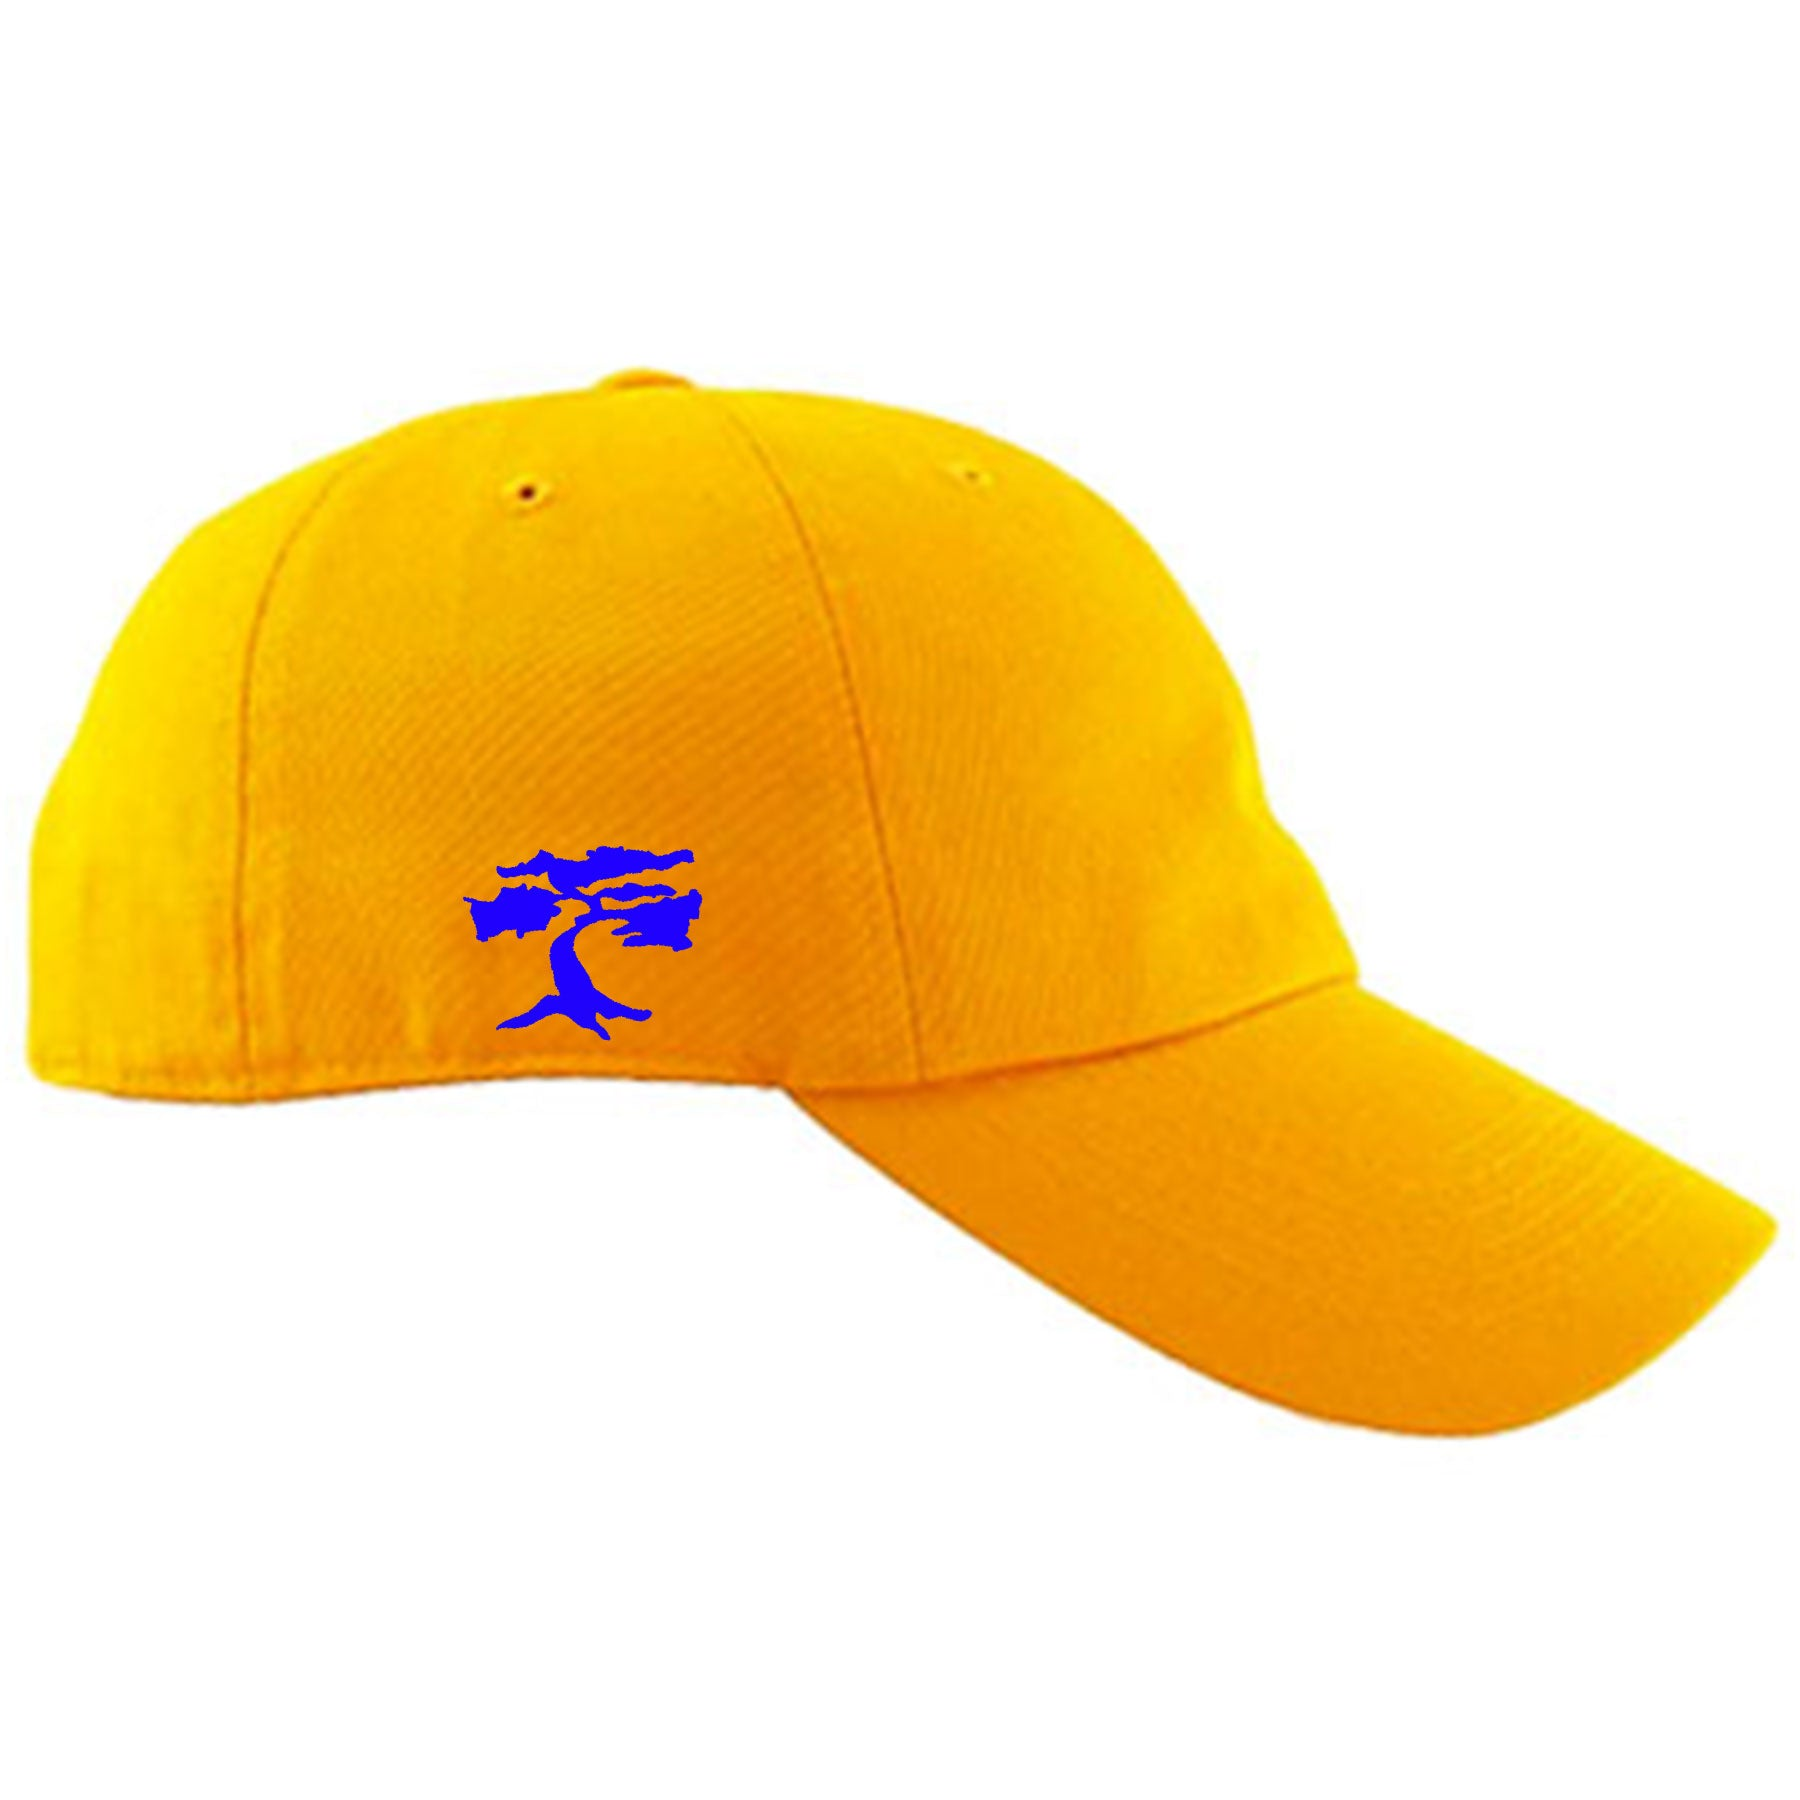 65494b3010d2 Jordan 5 Alternate Laney JSP Sneaker Matching Backwoods Yellow Dad hat   Embroidered on the right side of the Air Jordan 5 Laney sneaker matching  dad hat is ...